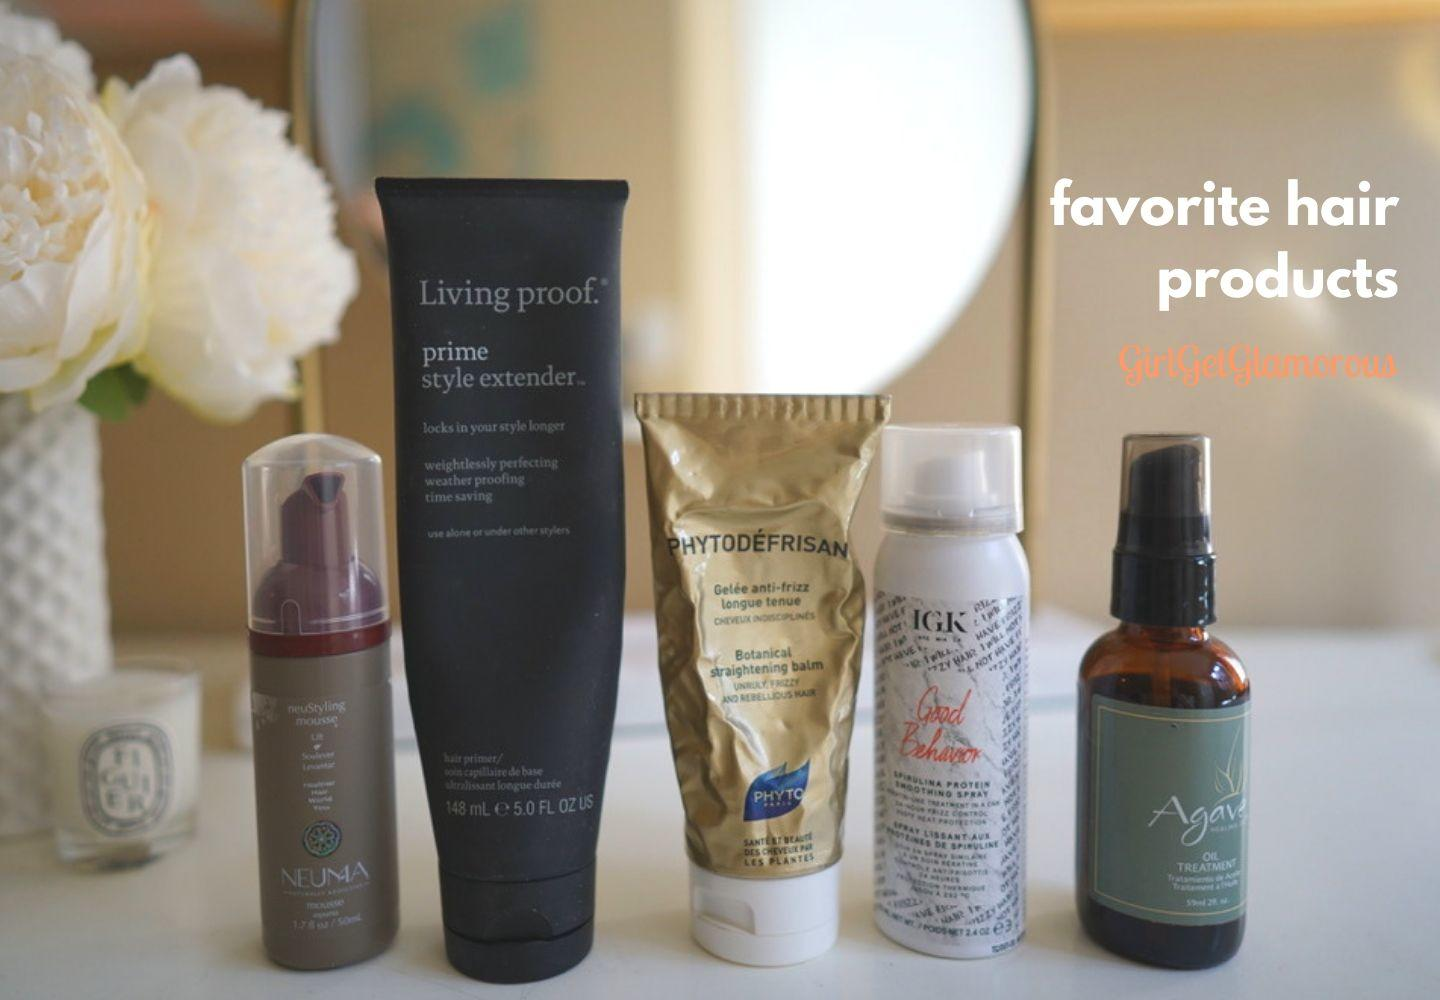 favorite-hair-products-for-big-volume-heat-protect-healthy-beauty-blog-top-picks.jpg